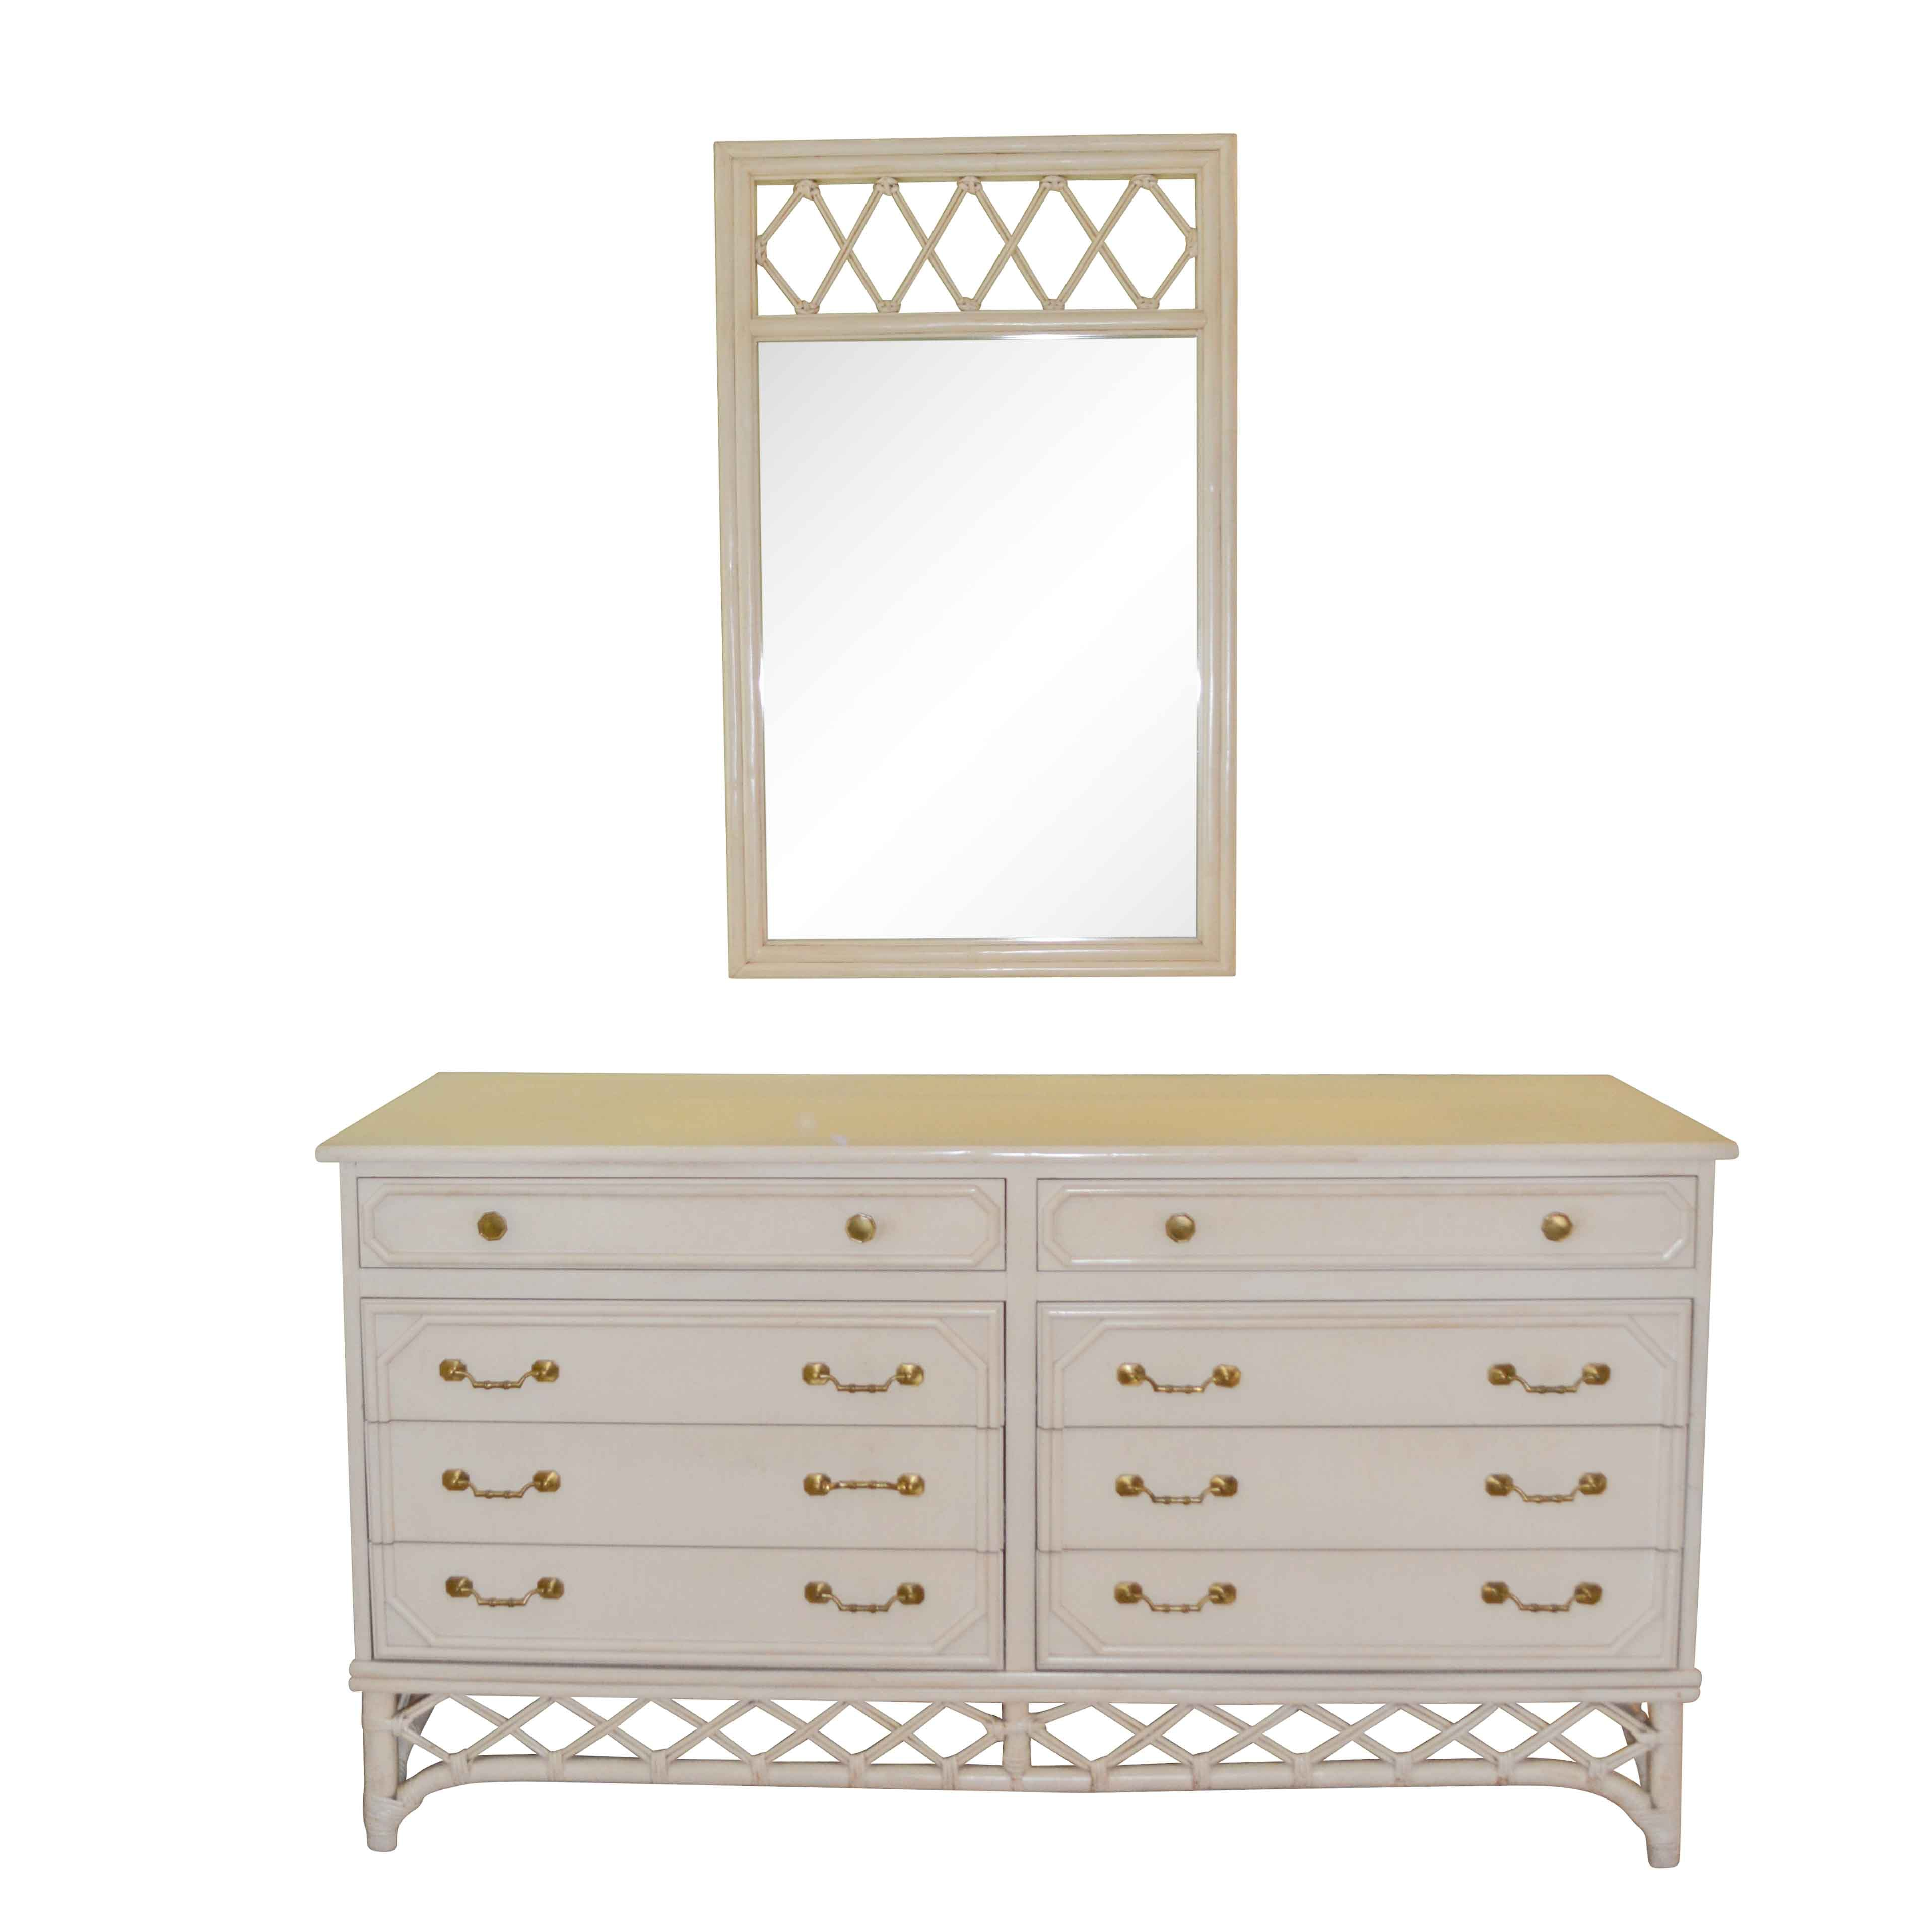 Vintage White Painted Dresser and Mirror by Ficks Reed